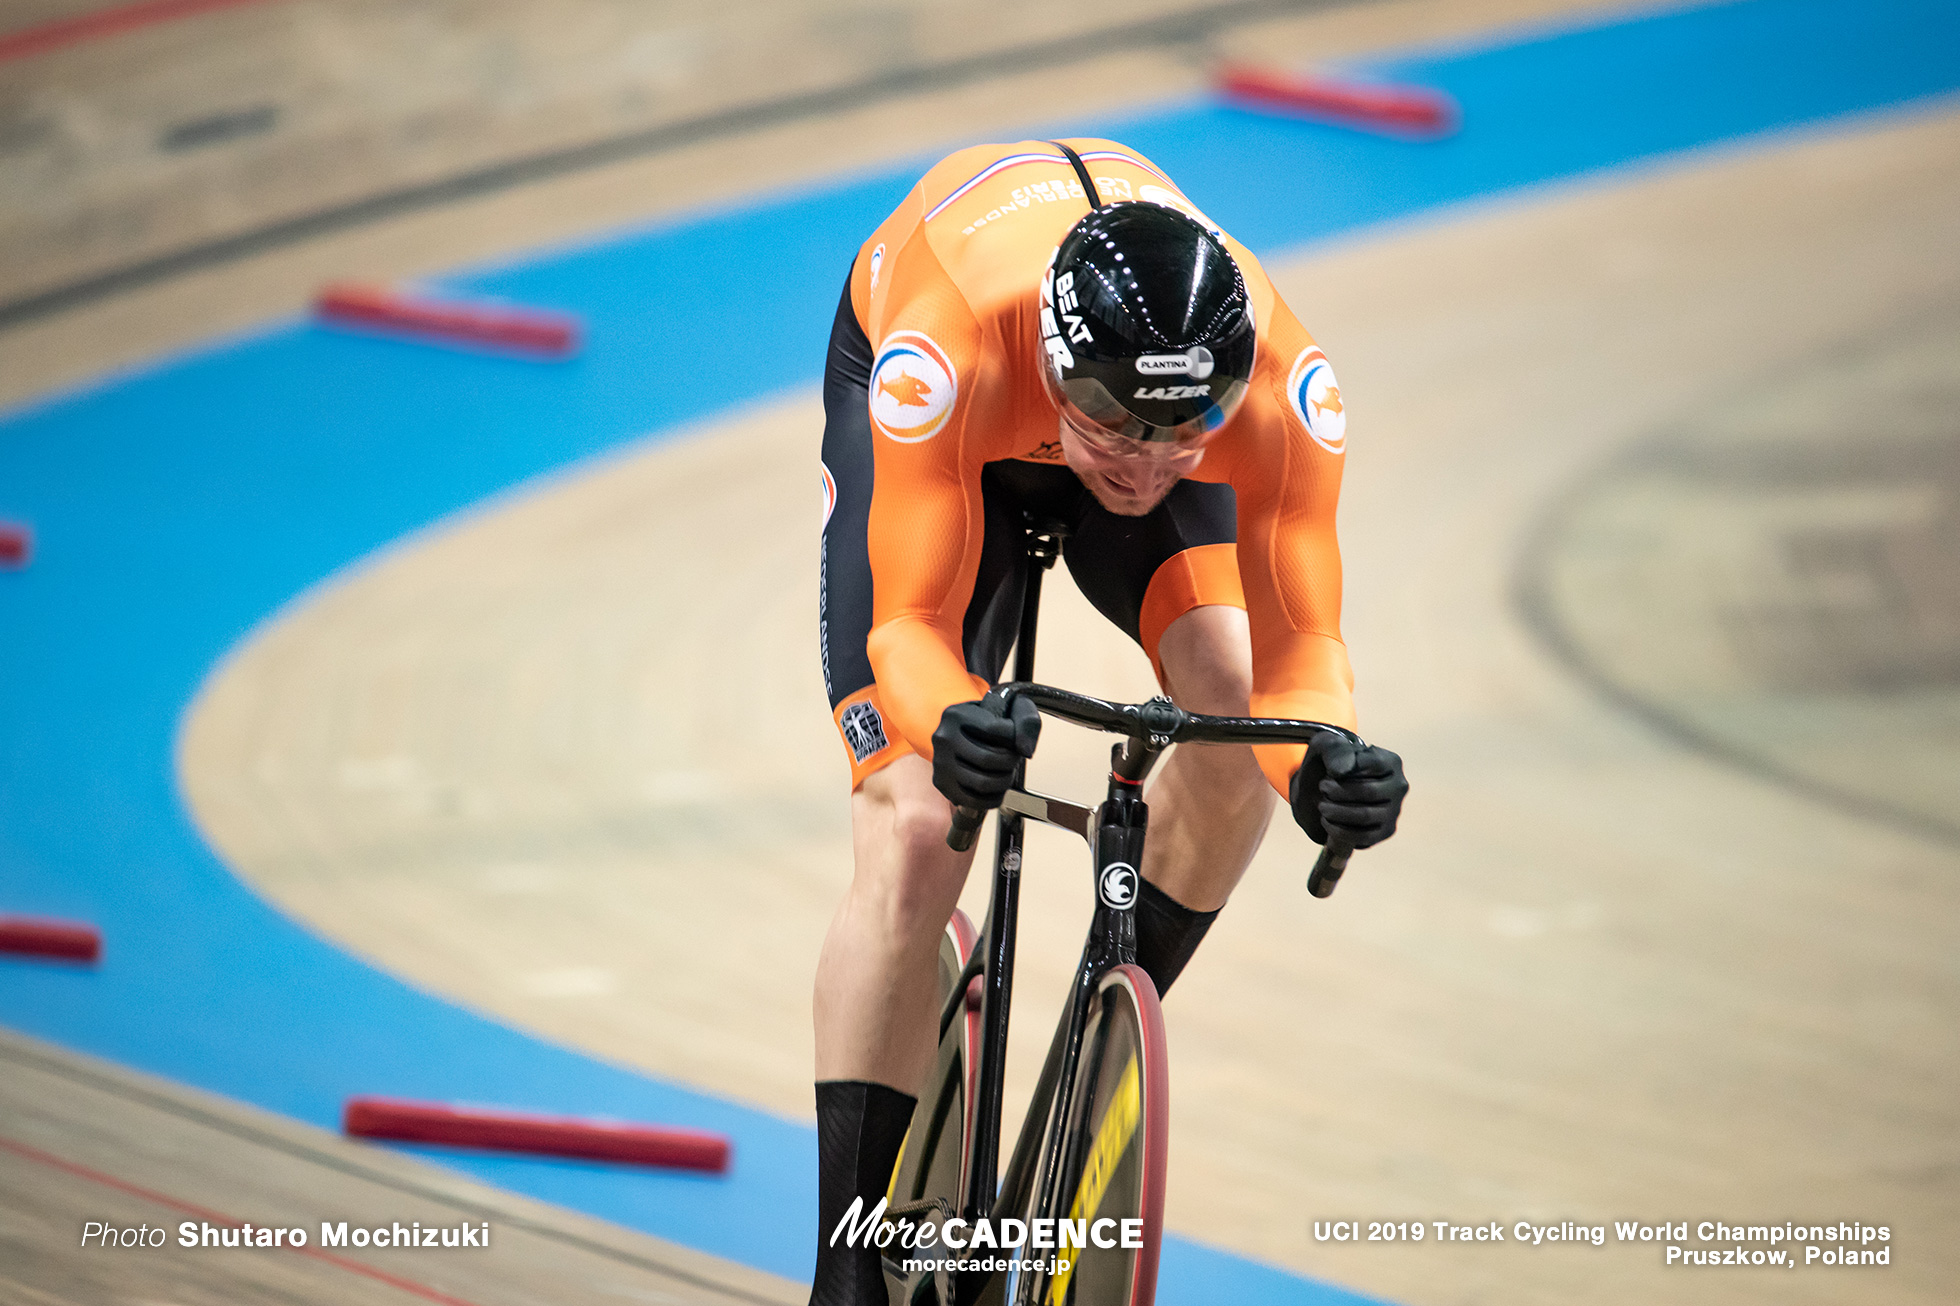 Men's Sprint Qualifying / 2019 Track Cycling World Championships Pruszków, Poland